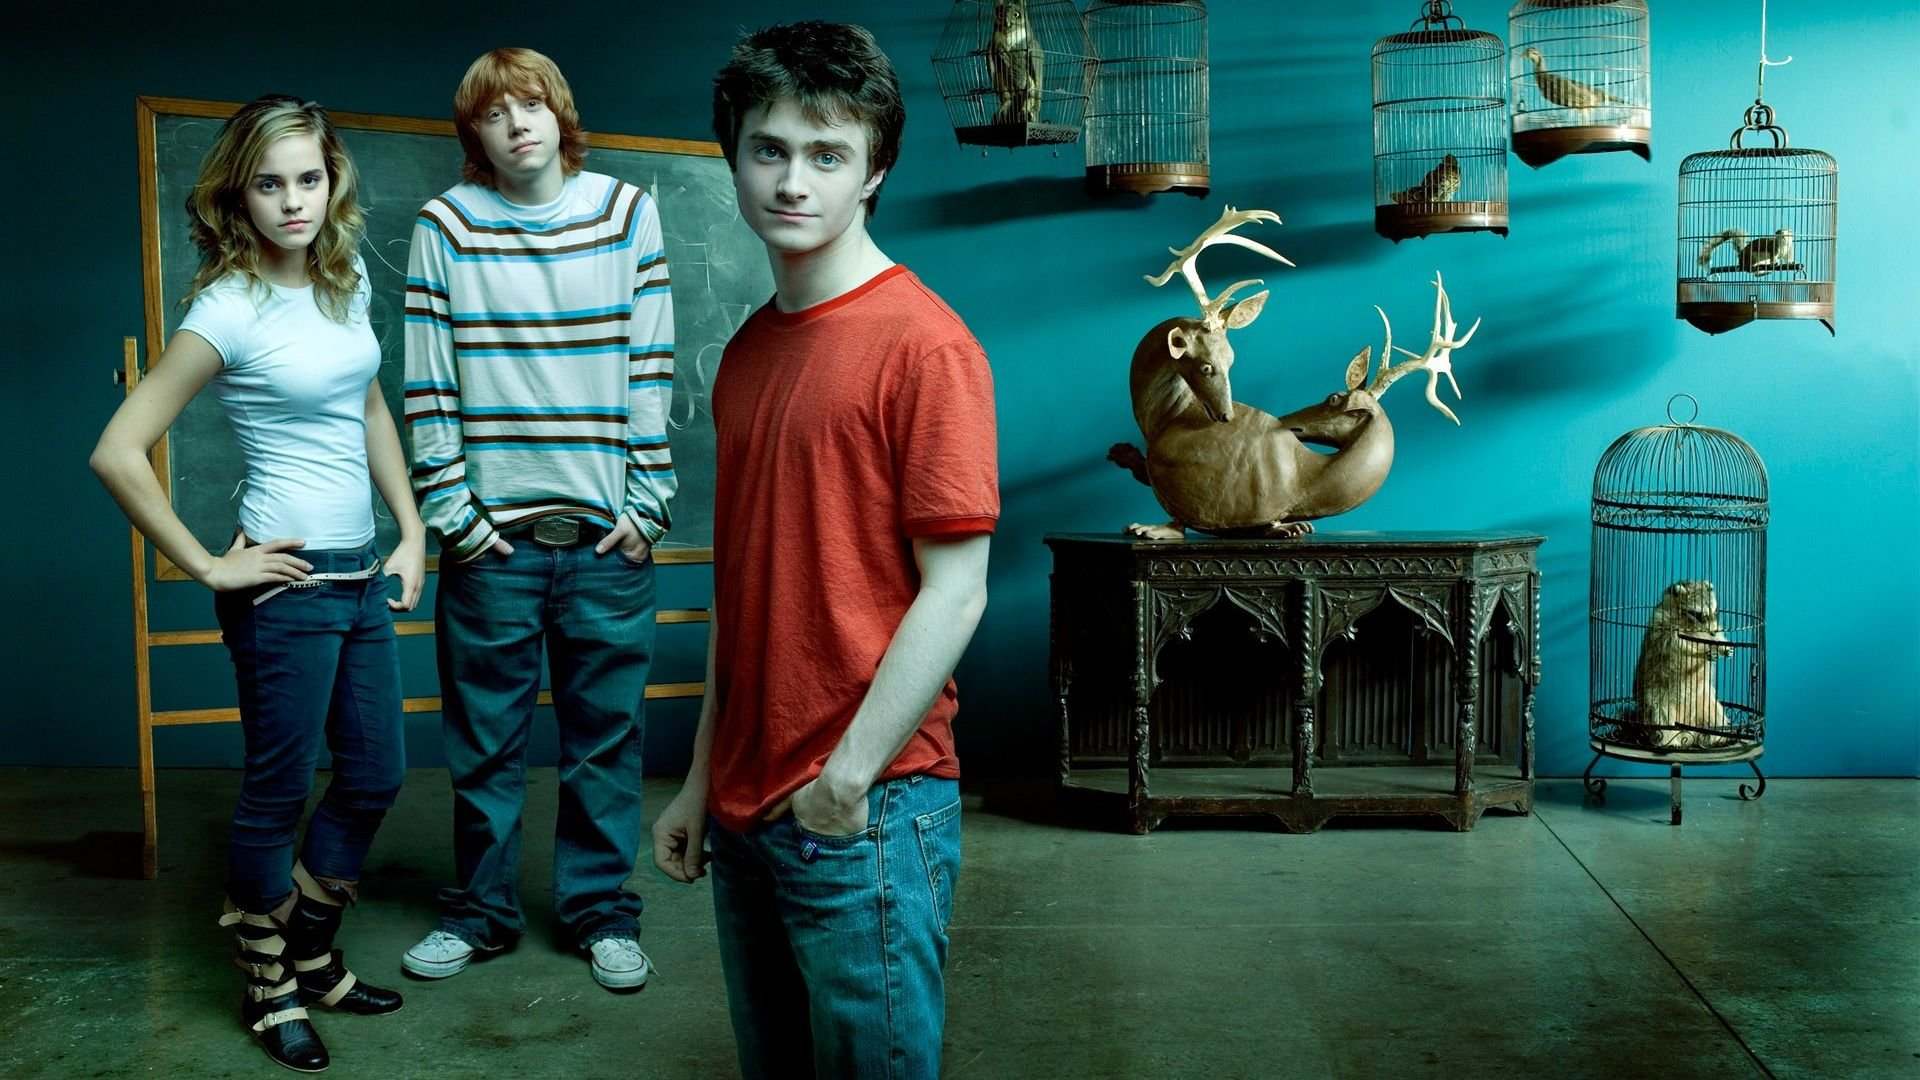 Free Harry Potter High Quality Wallpaper Id - Harry Potter Cast Background - HD Wallpaper